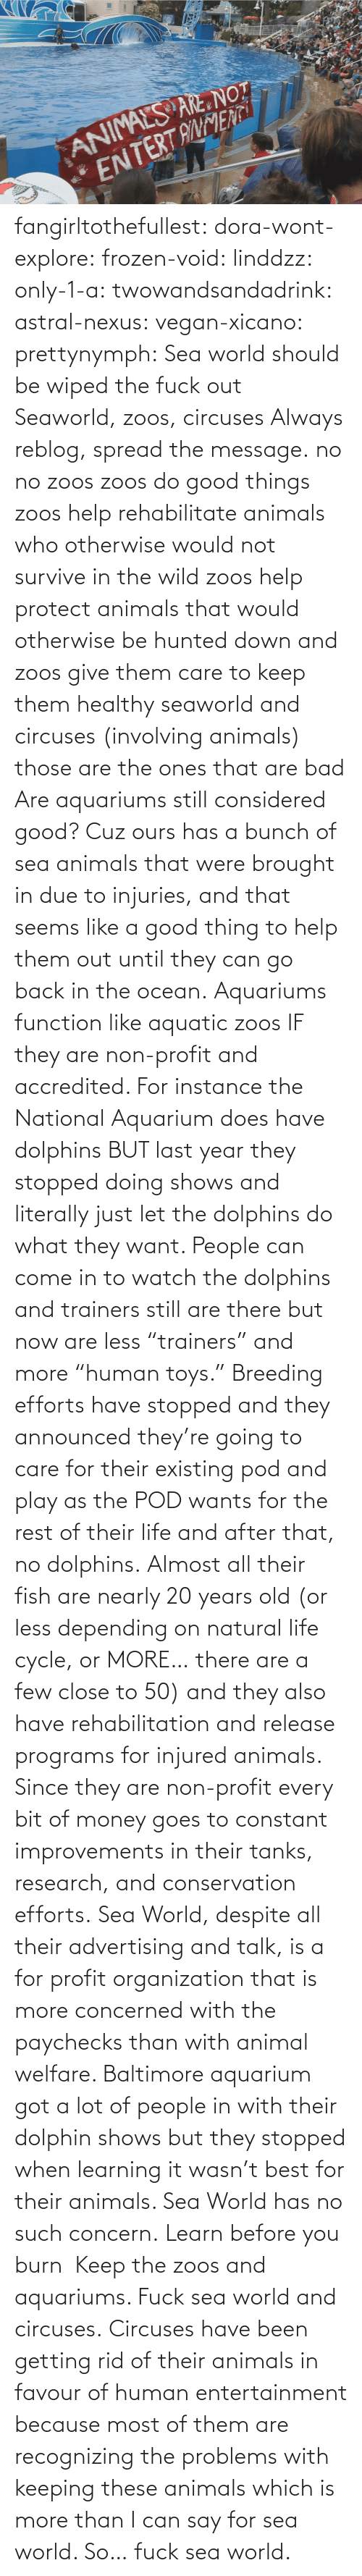 "More Than: fangirltothefullest:  dora-wont-explore:  frozen-void:  linddzz:  only-1-a:  twowandsandadrink:  astral-nexus:  vegan-xicano:  prettynymph:  Sea world should be wiped the fuck out  Seaworld, zoos, circuses  Always reblog, spread the message.  no no zoos zoos do good things zoos help rehabilitate animals who otherwise would not survive in the wild zoos help protect animals that would otherwise be hunted down and zoos give them care to keep them healthy seaworld and circuses (involving animals) those are the ones that are bad  Are aquariums still considered good? Cuz ours has a bunch of sea animals that were brought in due to injuries, and that seems like a good thing to help them out until they can go back in the ocean.  Aquariums function like aquatic zoos IF they are non-profit and accredited. For instance the National Aquarium does have dolphins BUT last year they stopped doing shows and literally just let the dolphins do what they want. People can come in to watch the dolphins and trainers still are there but now are less ""trainers"" and more ""human toys."" Breeding efforts have stopped and they announced they're going to care for their existing pod and play as the POD wants for the rest of their life and after that, no dolphins. Almost all their fish are nearly 20 years old (or less depending on natural life cycle, or MORE… there are a few close to 50) and they also have rehabilitation and release programs for injured animals. Since they are non-profit every bit of money goes to constant improvements in their tanks, research, and conservation efforts. Sea World, despite all their advertising and talk, is a for profit organization that is more concerned with the paychecks than with animal welfare. Baltimore aquarium got a lot of people in with their dolphin shows but they stopped when learning it wasn't best for their animals. Sea World has no such concern.  Learn before you burn   Keep the zoos and aquariums. Fuck sea world and circuses.  Circuses have been getting rid of  their animals in favour of human entertainment because most of them are recognizing the problems with keeping these animals which is more than I can say for sea world. So… fuck sea world."